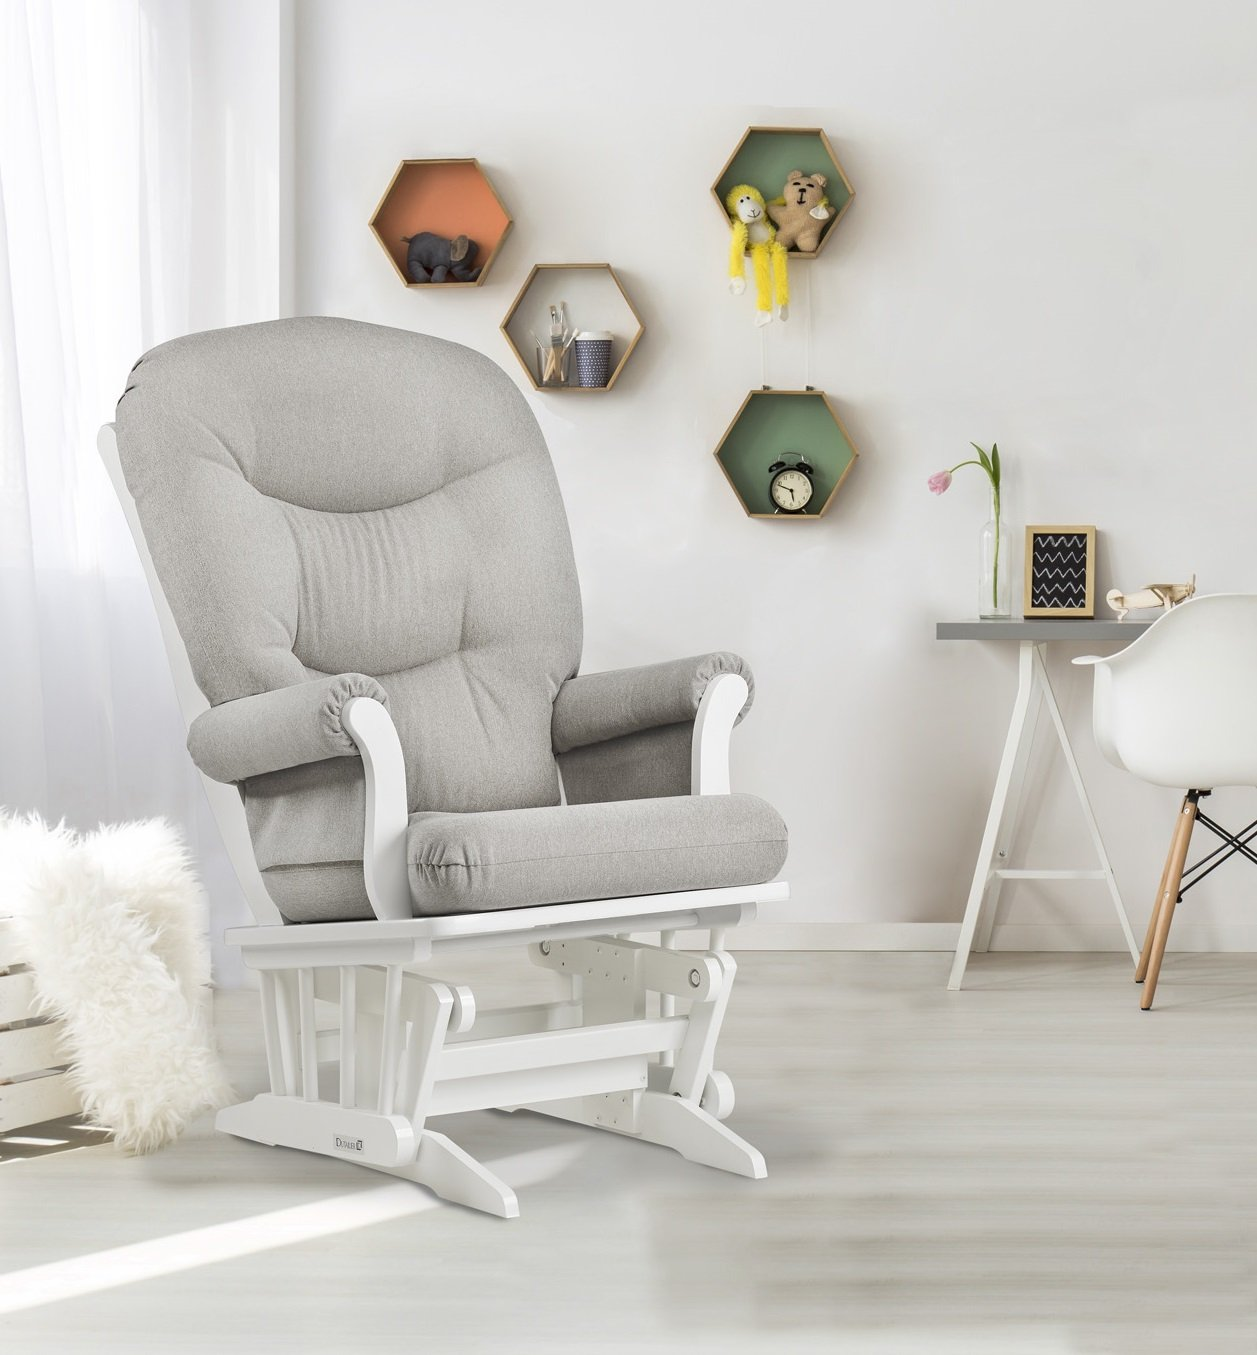 Dutailier Sleigh Glider, Coffee/Pebble Grey D00-61B-62-5288